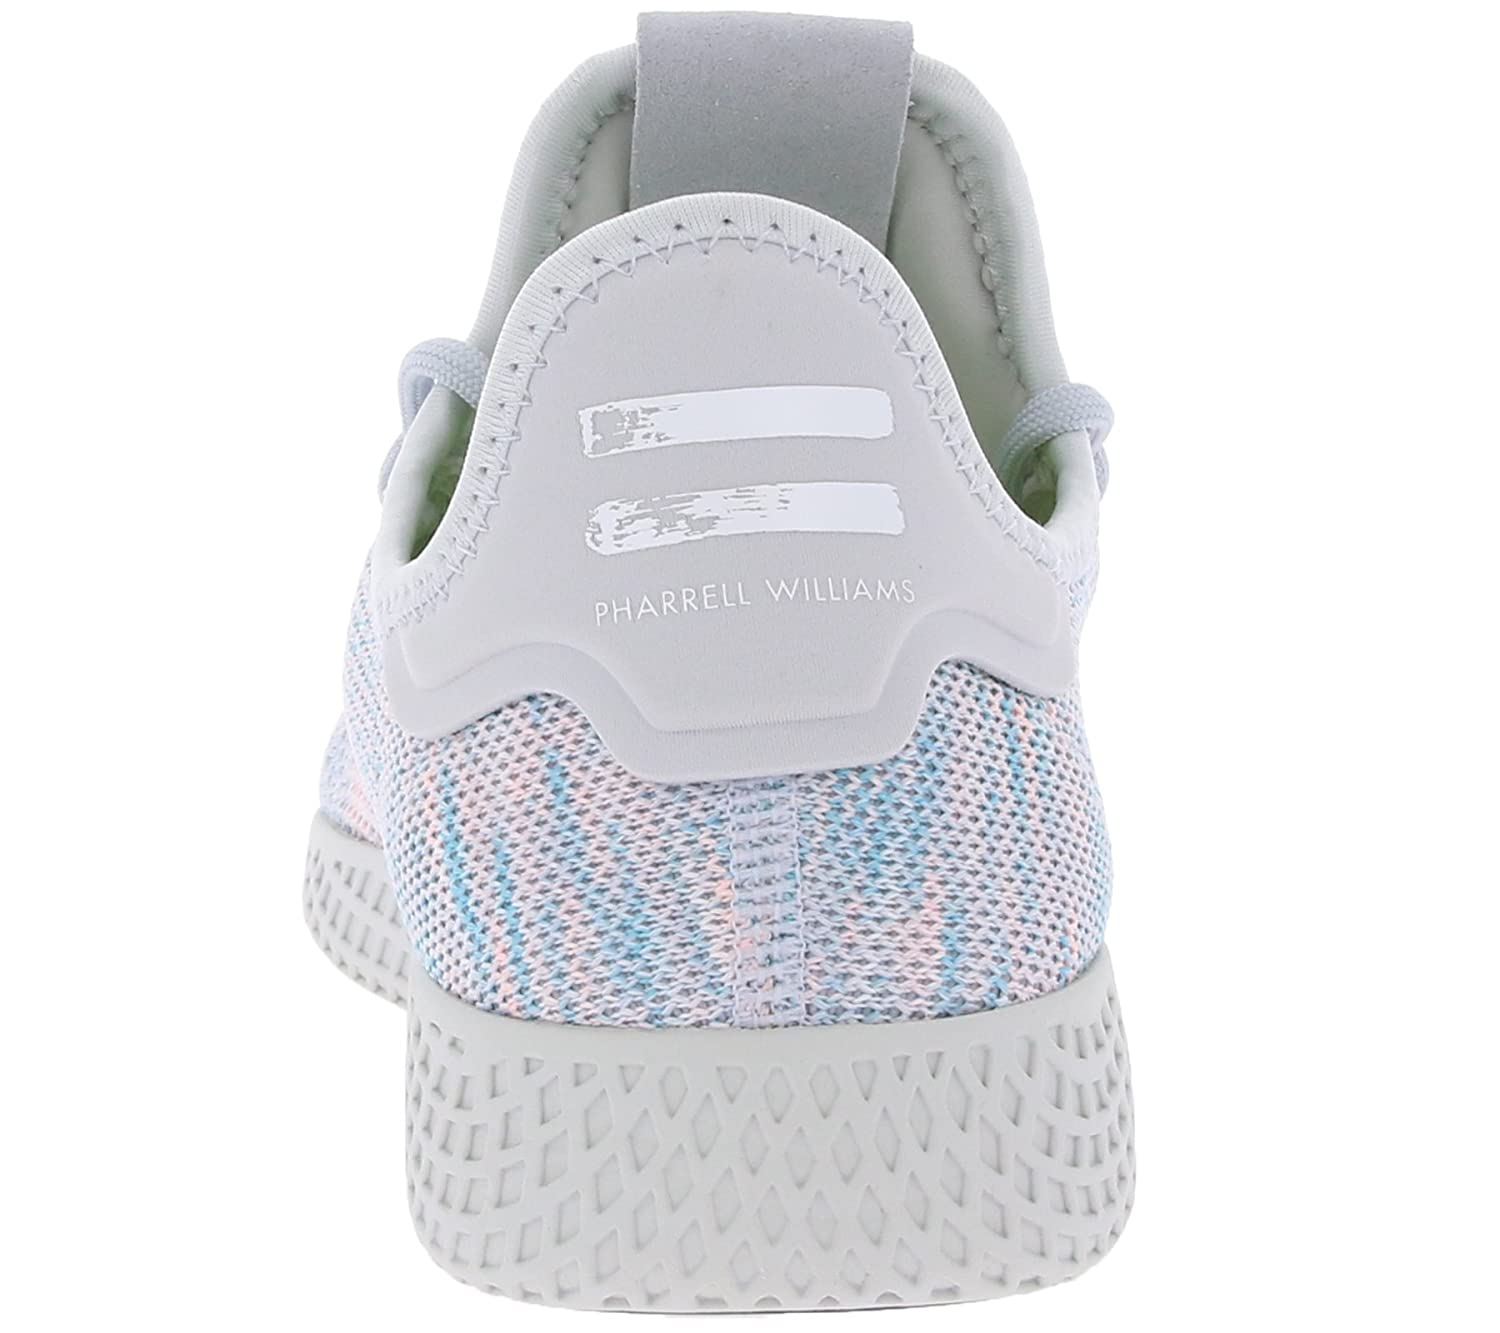 c1345aae4f08e adidas Originals Pw Tennis Hu Mens Trainers White - White - UK Sizes 4-10   Amazon.co.uk  Shoes   Bags